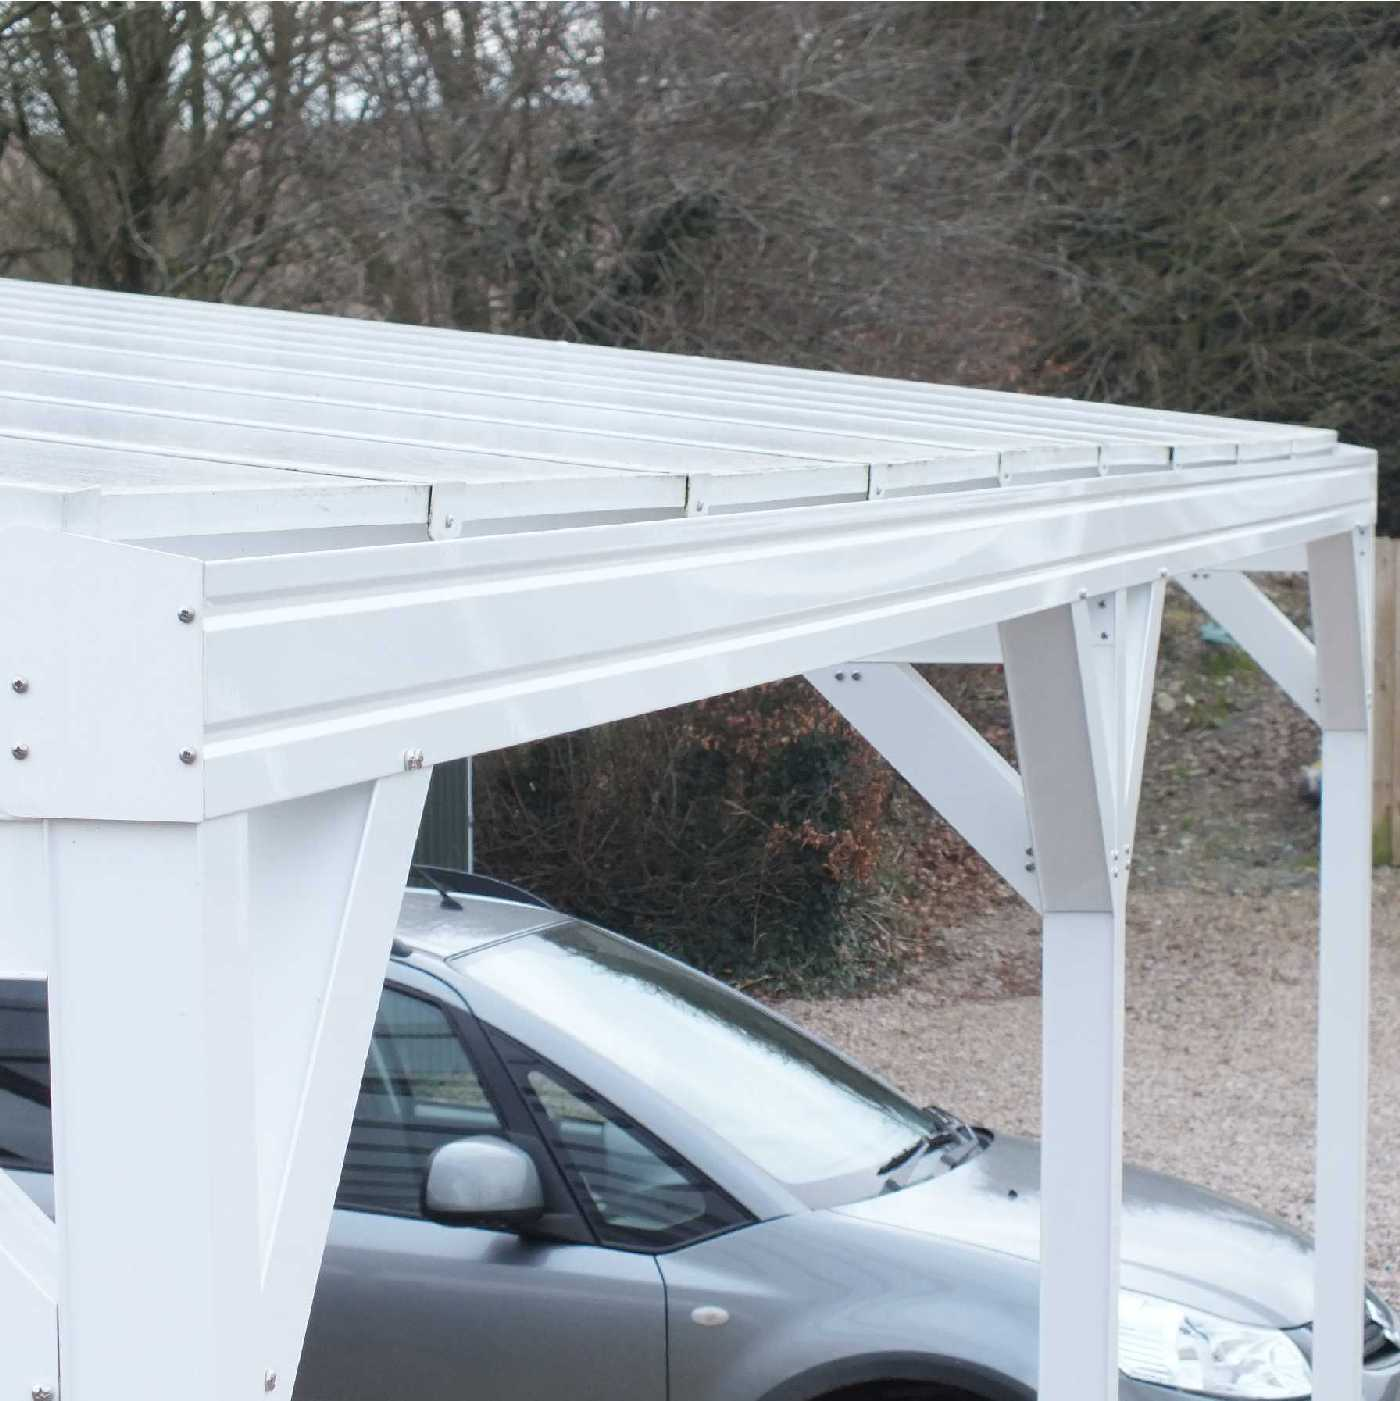 Omega Smart Free-Standing, MonoPitch Roof Canopy with 16mm Polycarbonate Glazing - 7.8m (W) x 4.0m (P), (8) Supporting Posts from Omega Build